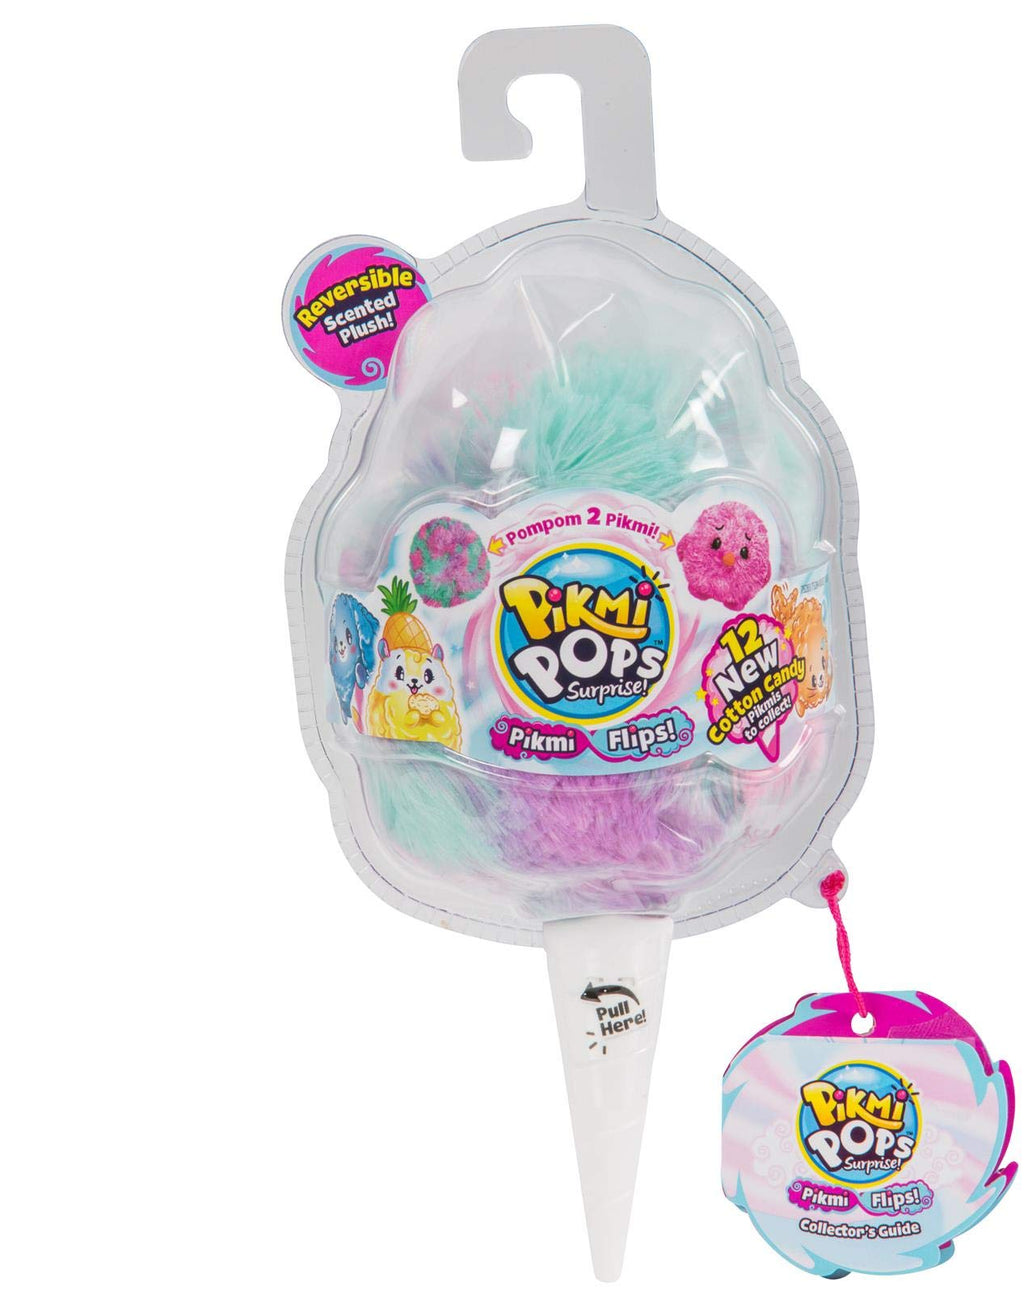 Pikmi Pops Surprise! Flips! Series 4 Mystery Pack Reversible Scented Soft & Fluffy Plush!